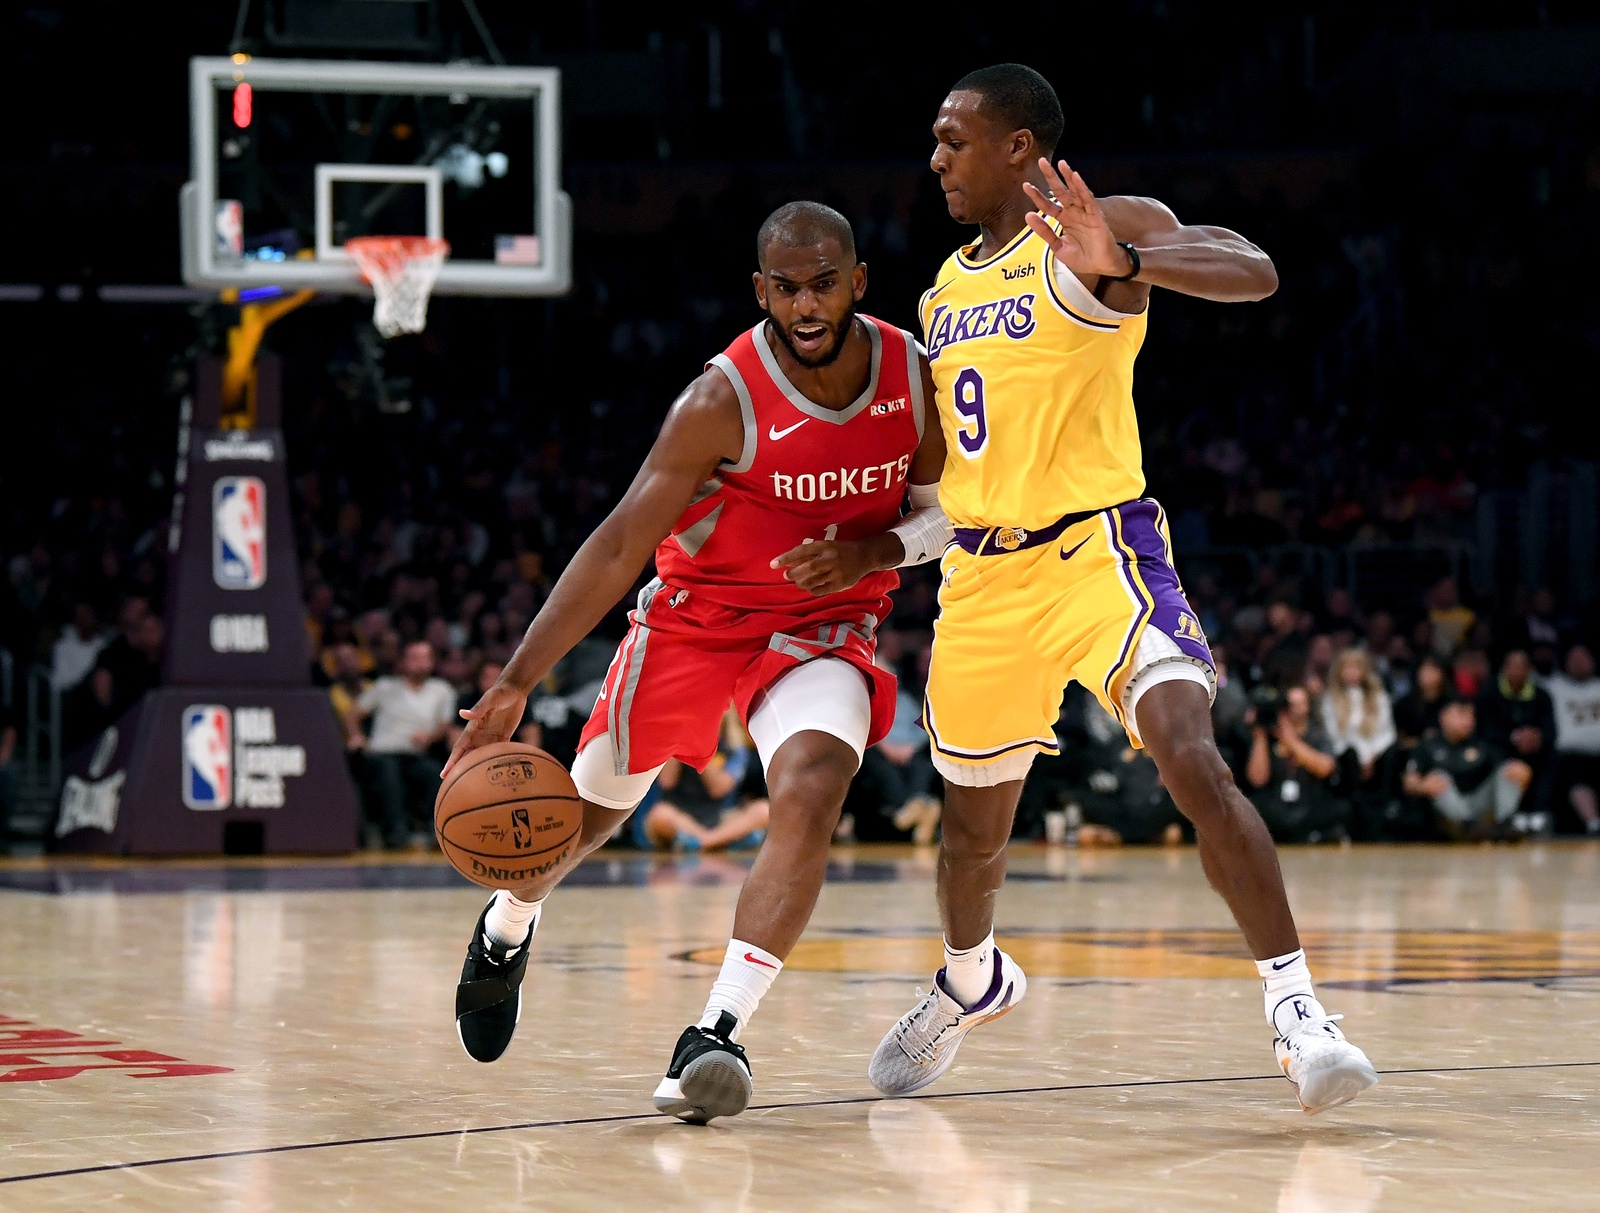 Chris Paul #3 of the Houston Rockets drives on Rajon Rondo #9 of the Los Angeles Lakers during the second quarter at Staples Center on October 20, 2018 in Los Angeles, California.